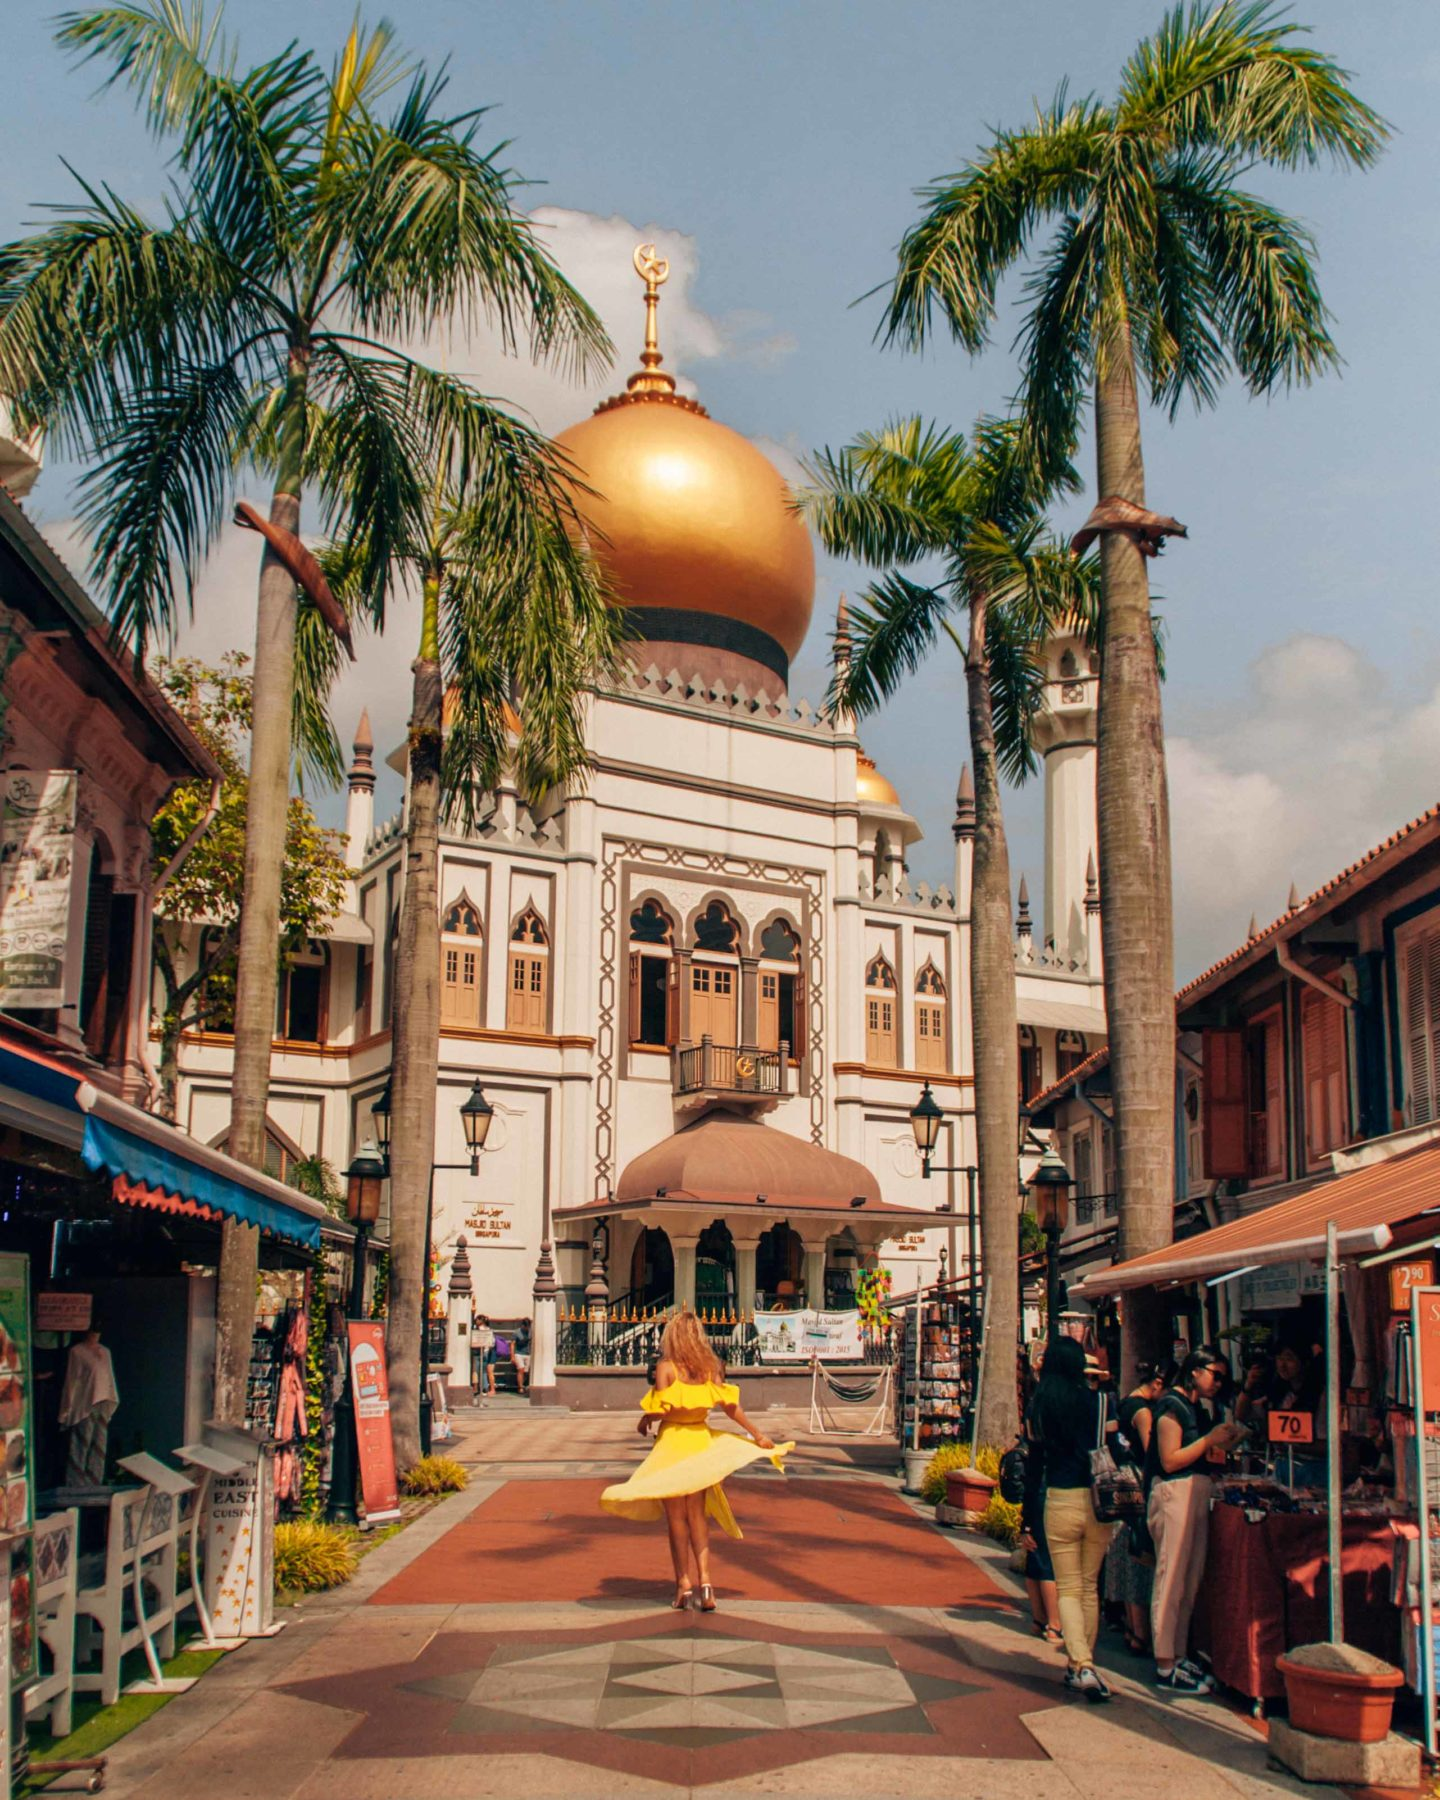 Arab street in Singapore, instagrammable spot in Singapore